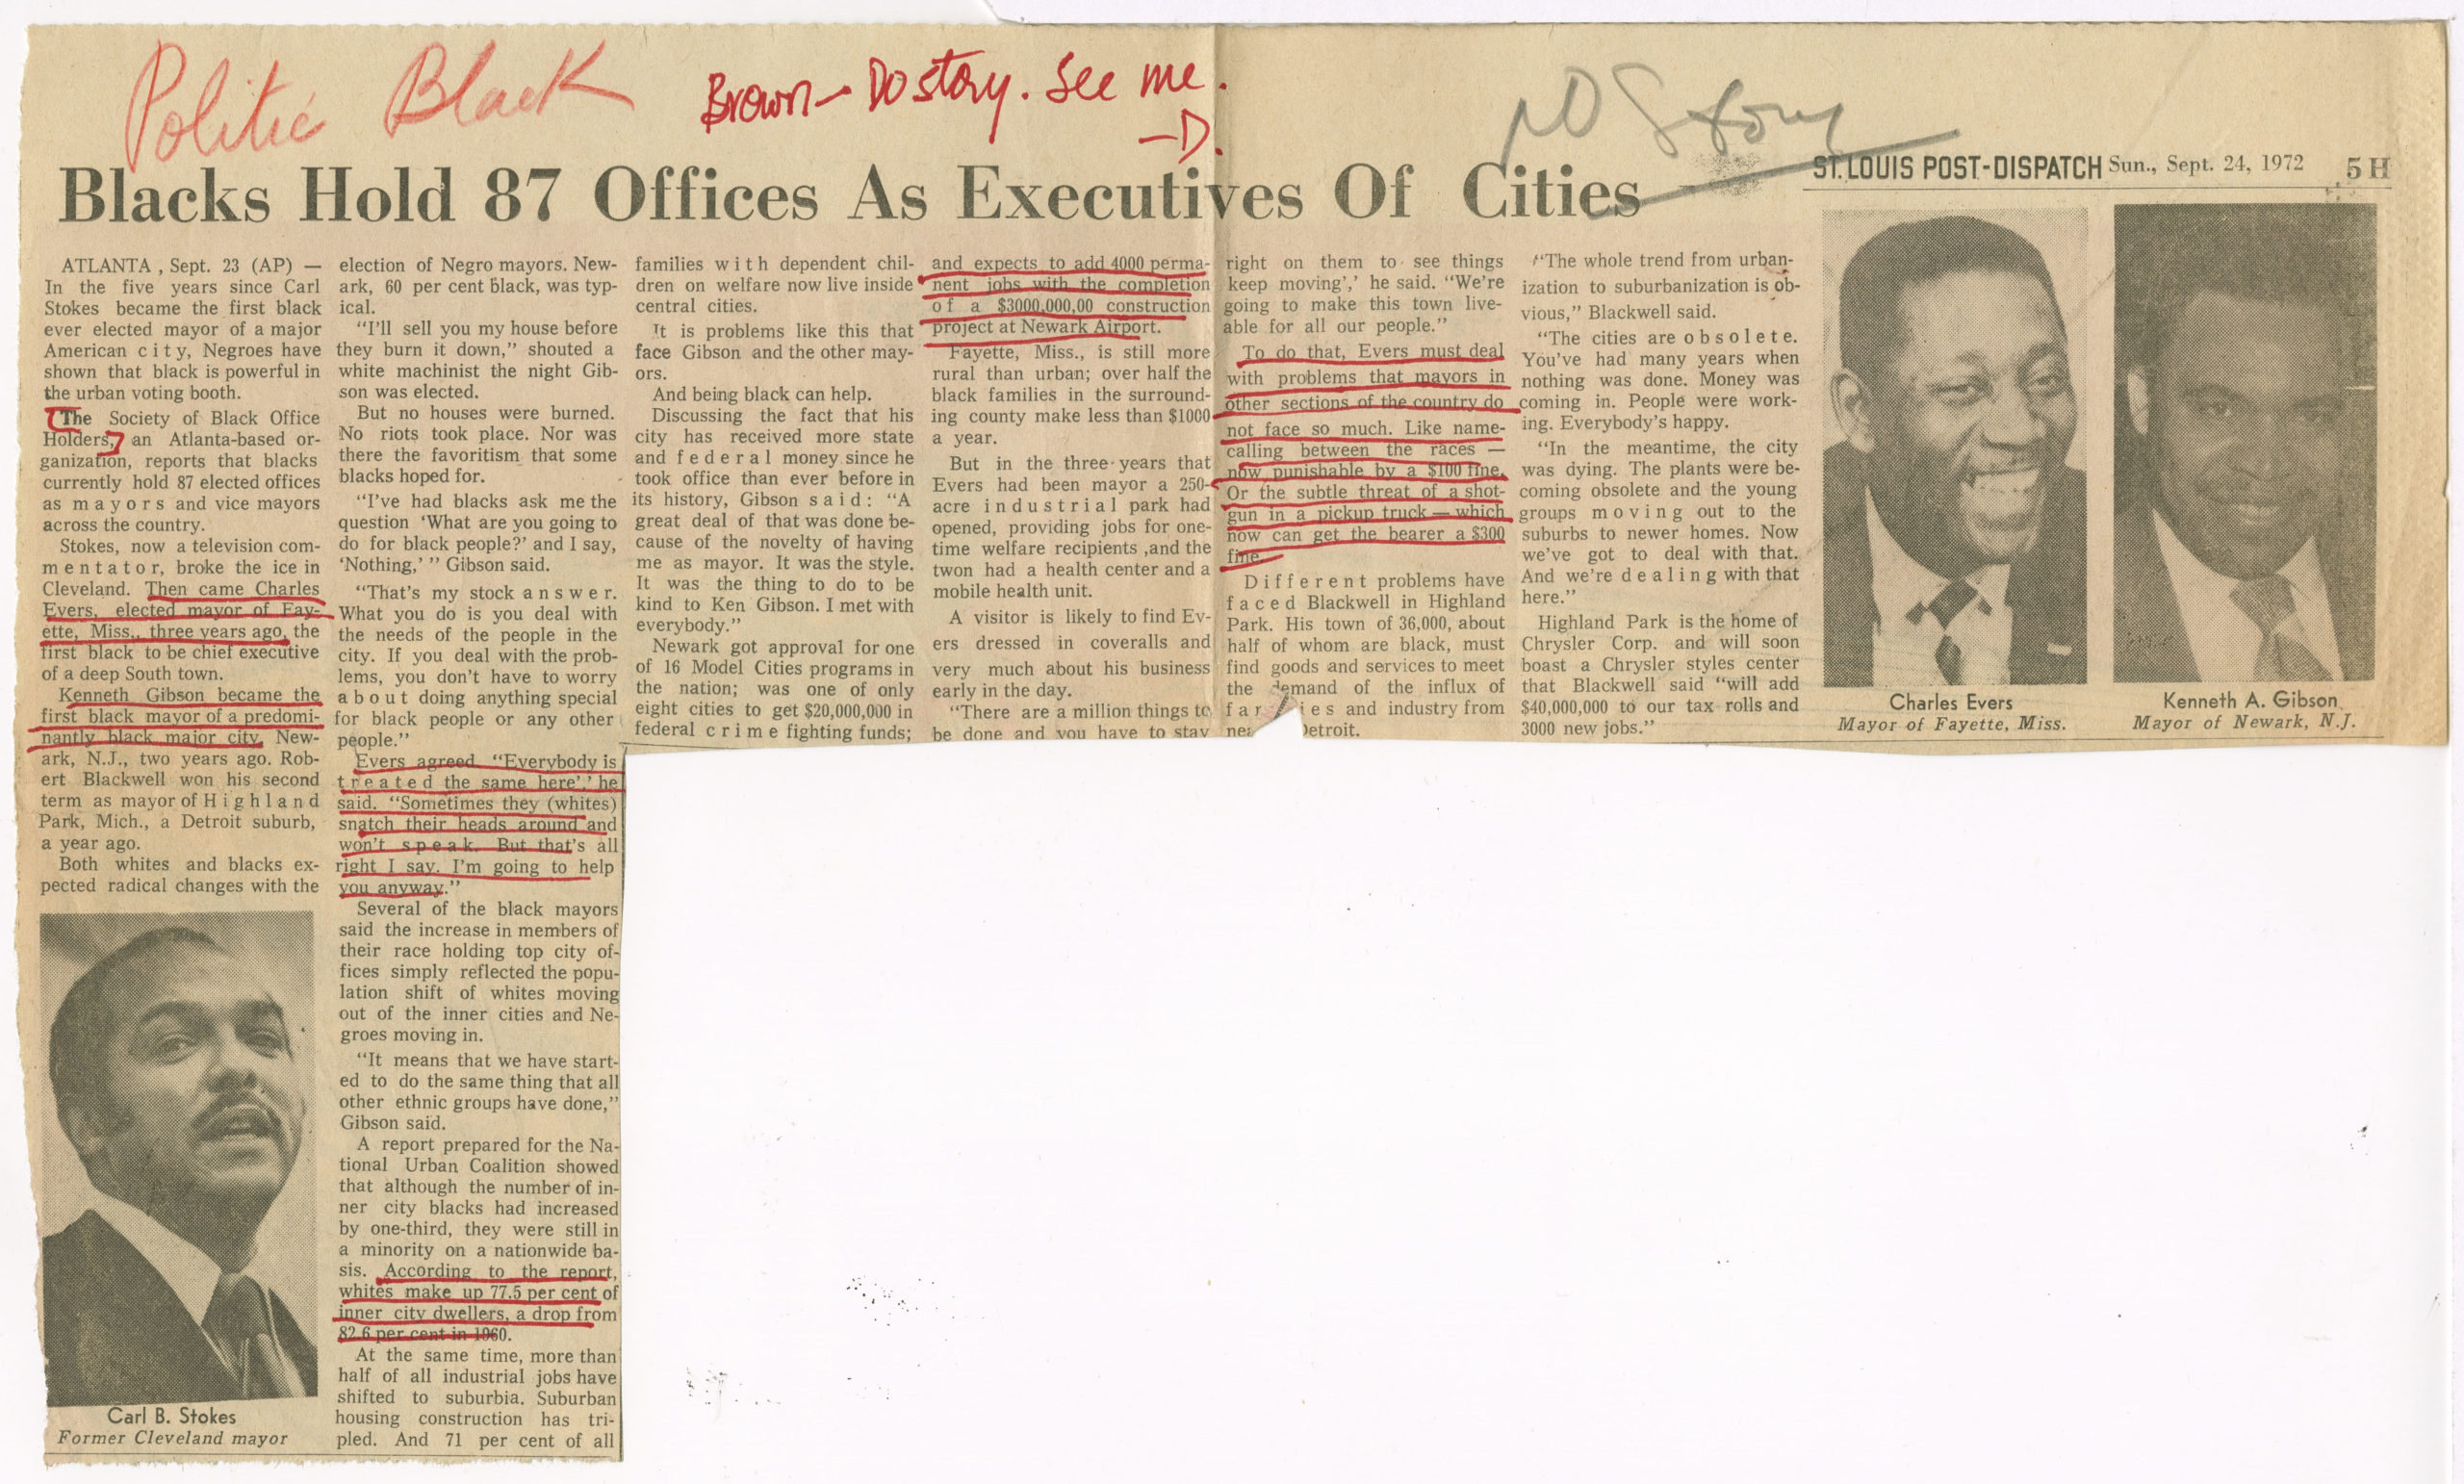 Blacks Hold 87 Offices As Executives of Cities, St. Louis Post-Dispatch1972 September 24Johnson Publishing Company Clippings File Collection